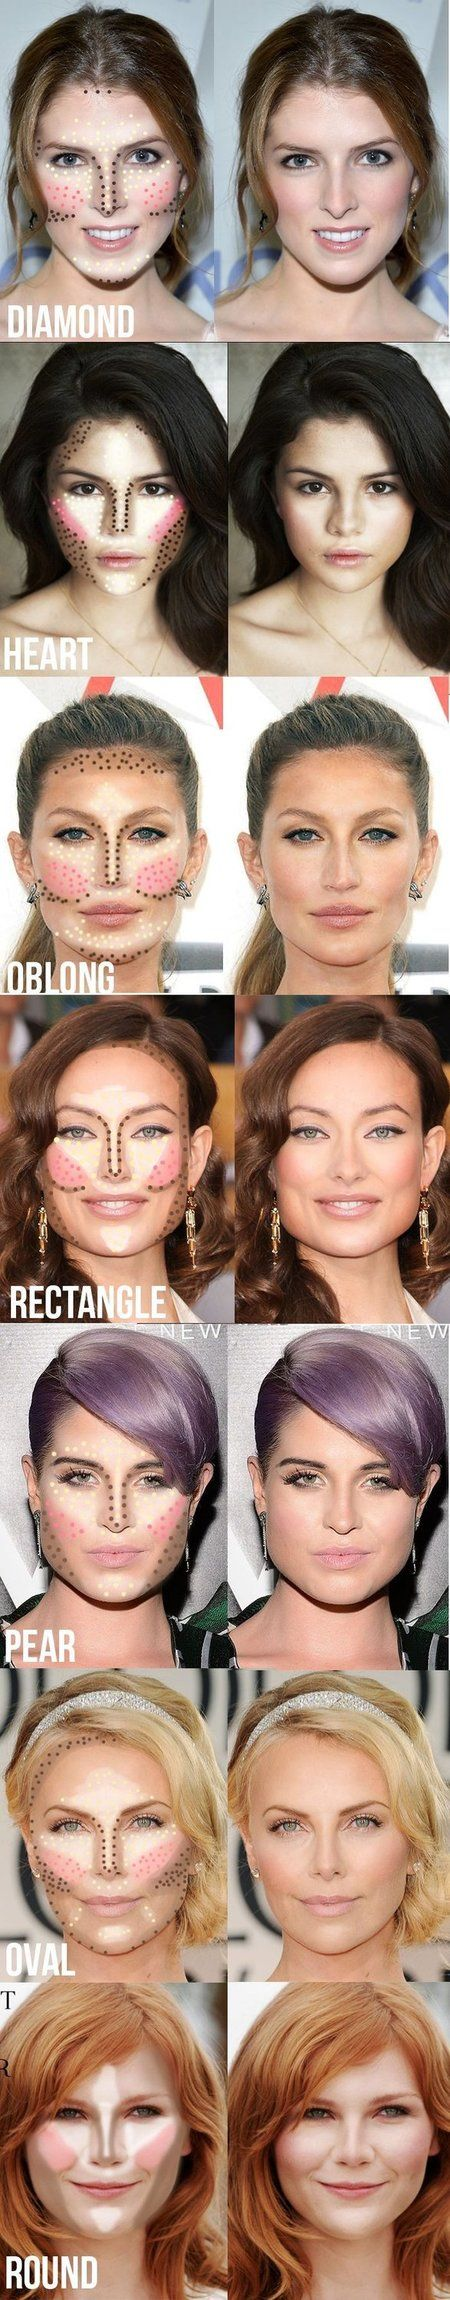 Contouring and Highlighting Guide for Your Face Shape #contouring #Highlights #makeup #howto - bellashoot.com